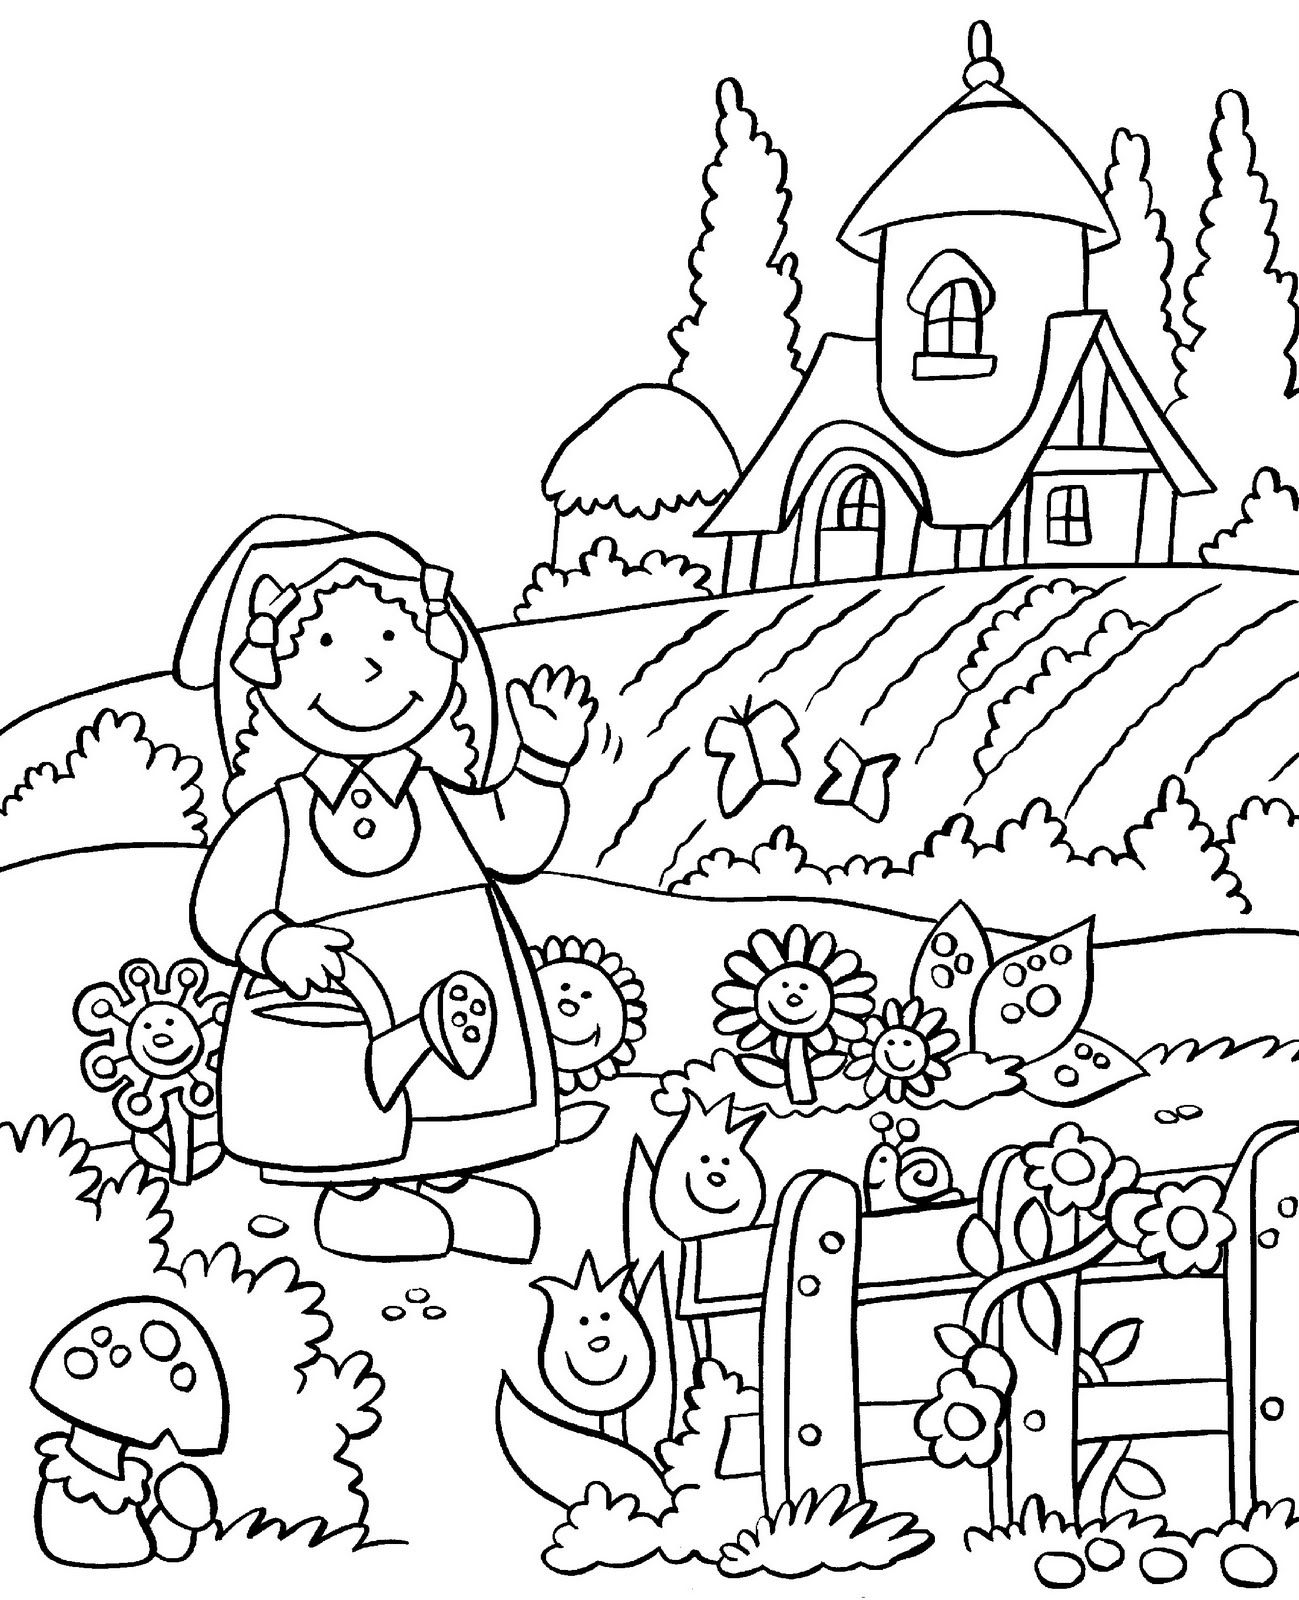 this is country coloring pages templates photo images pictures